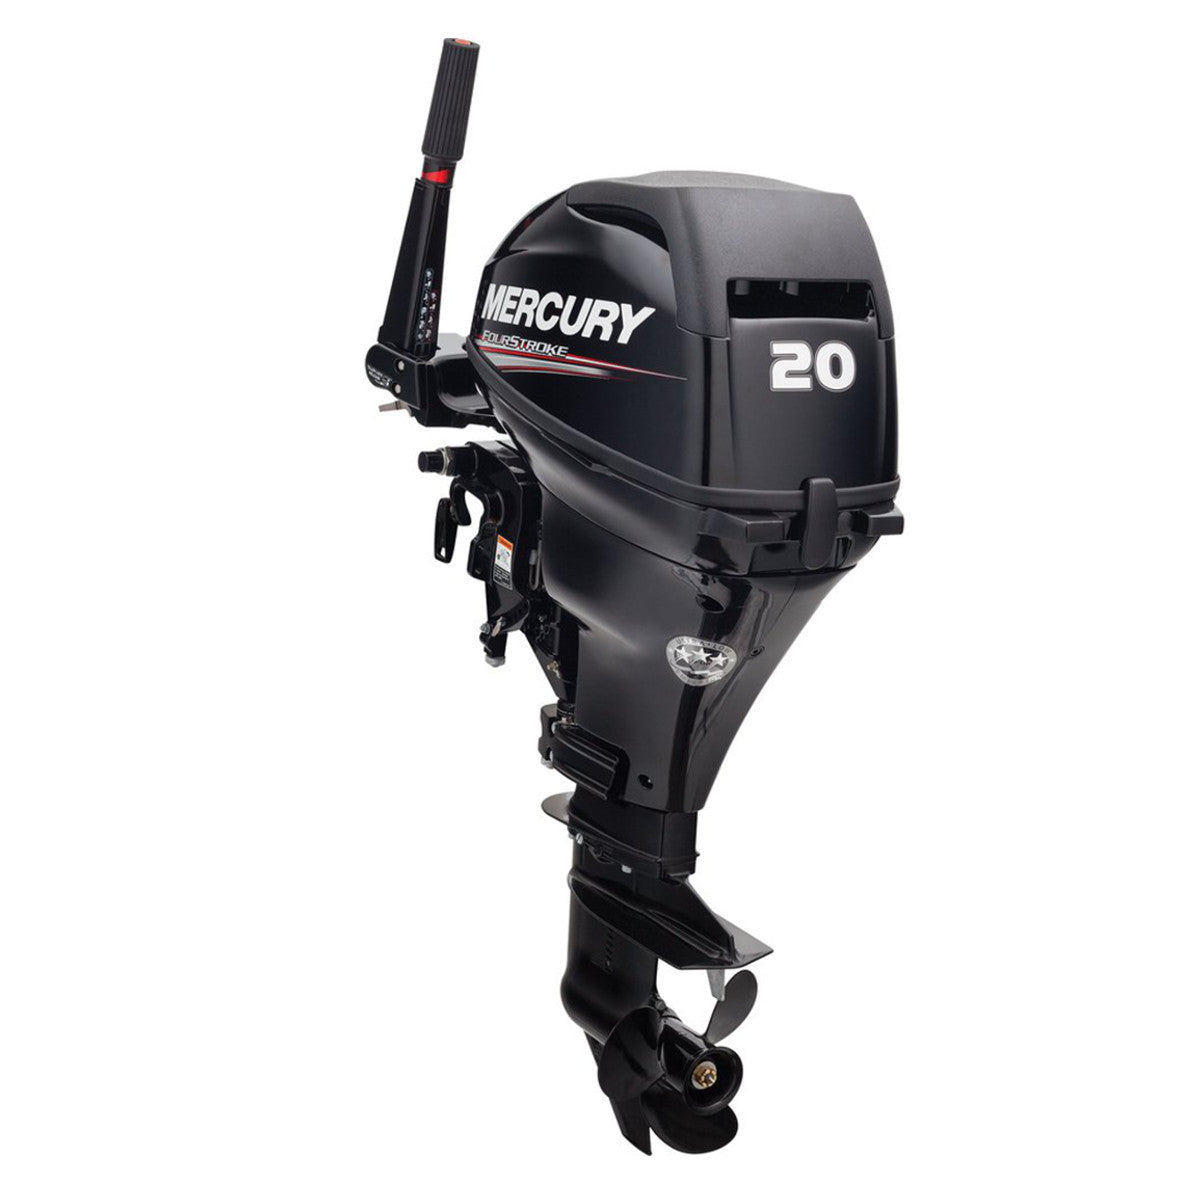 Mercury 20 HP Portable 4 Stroke Outboard Motor, Long Shaft, Electric Start,  Power Trim - Warehouse Deal